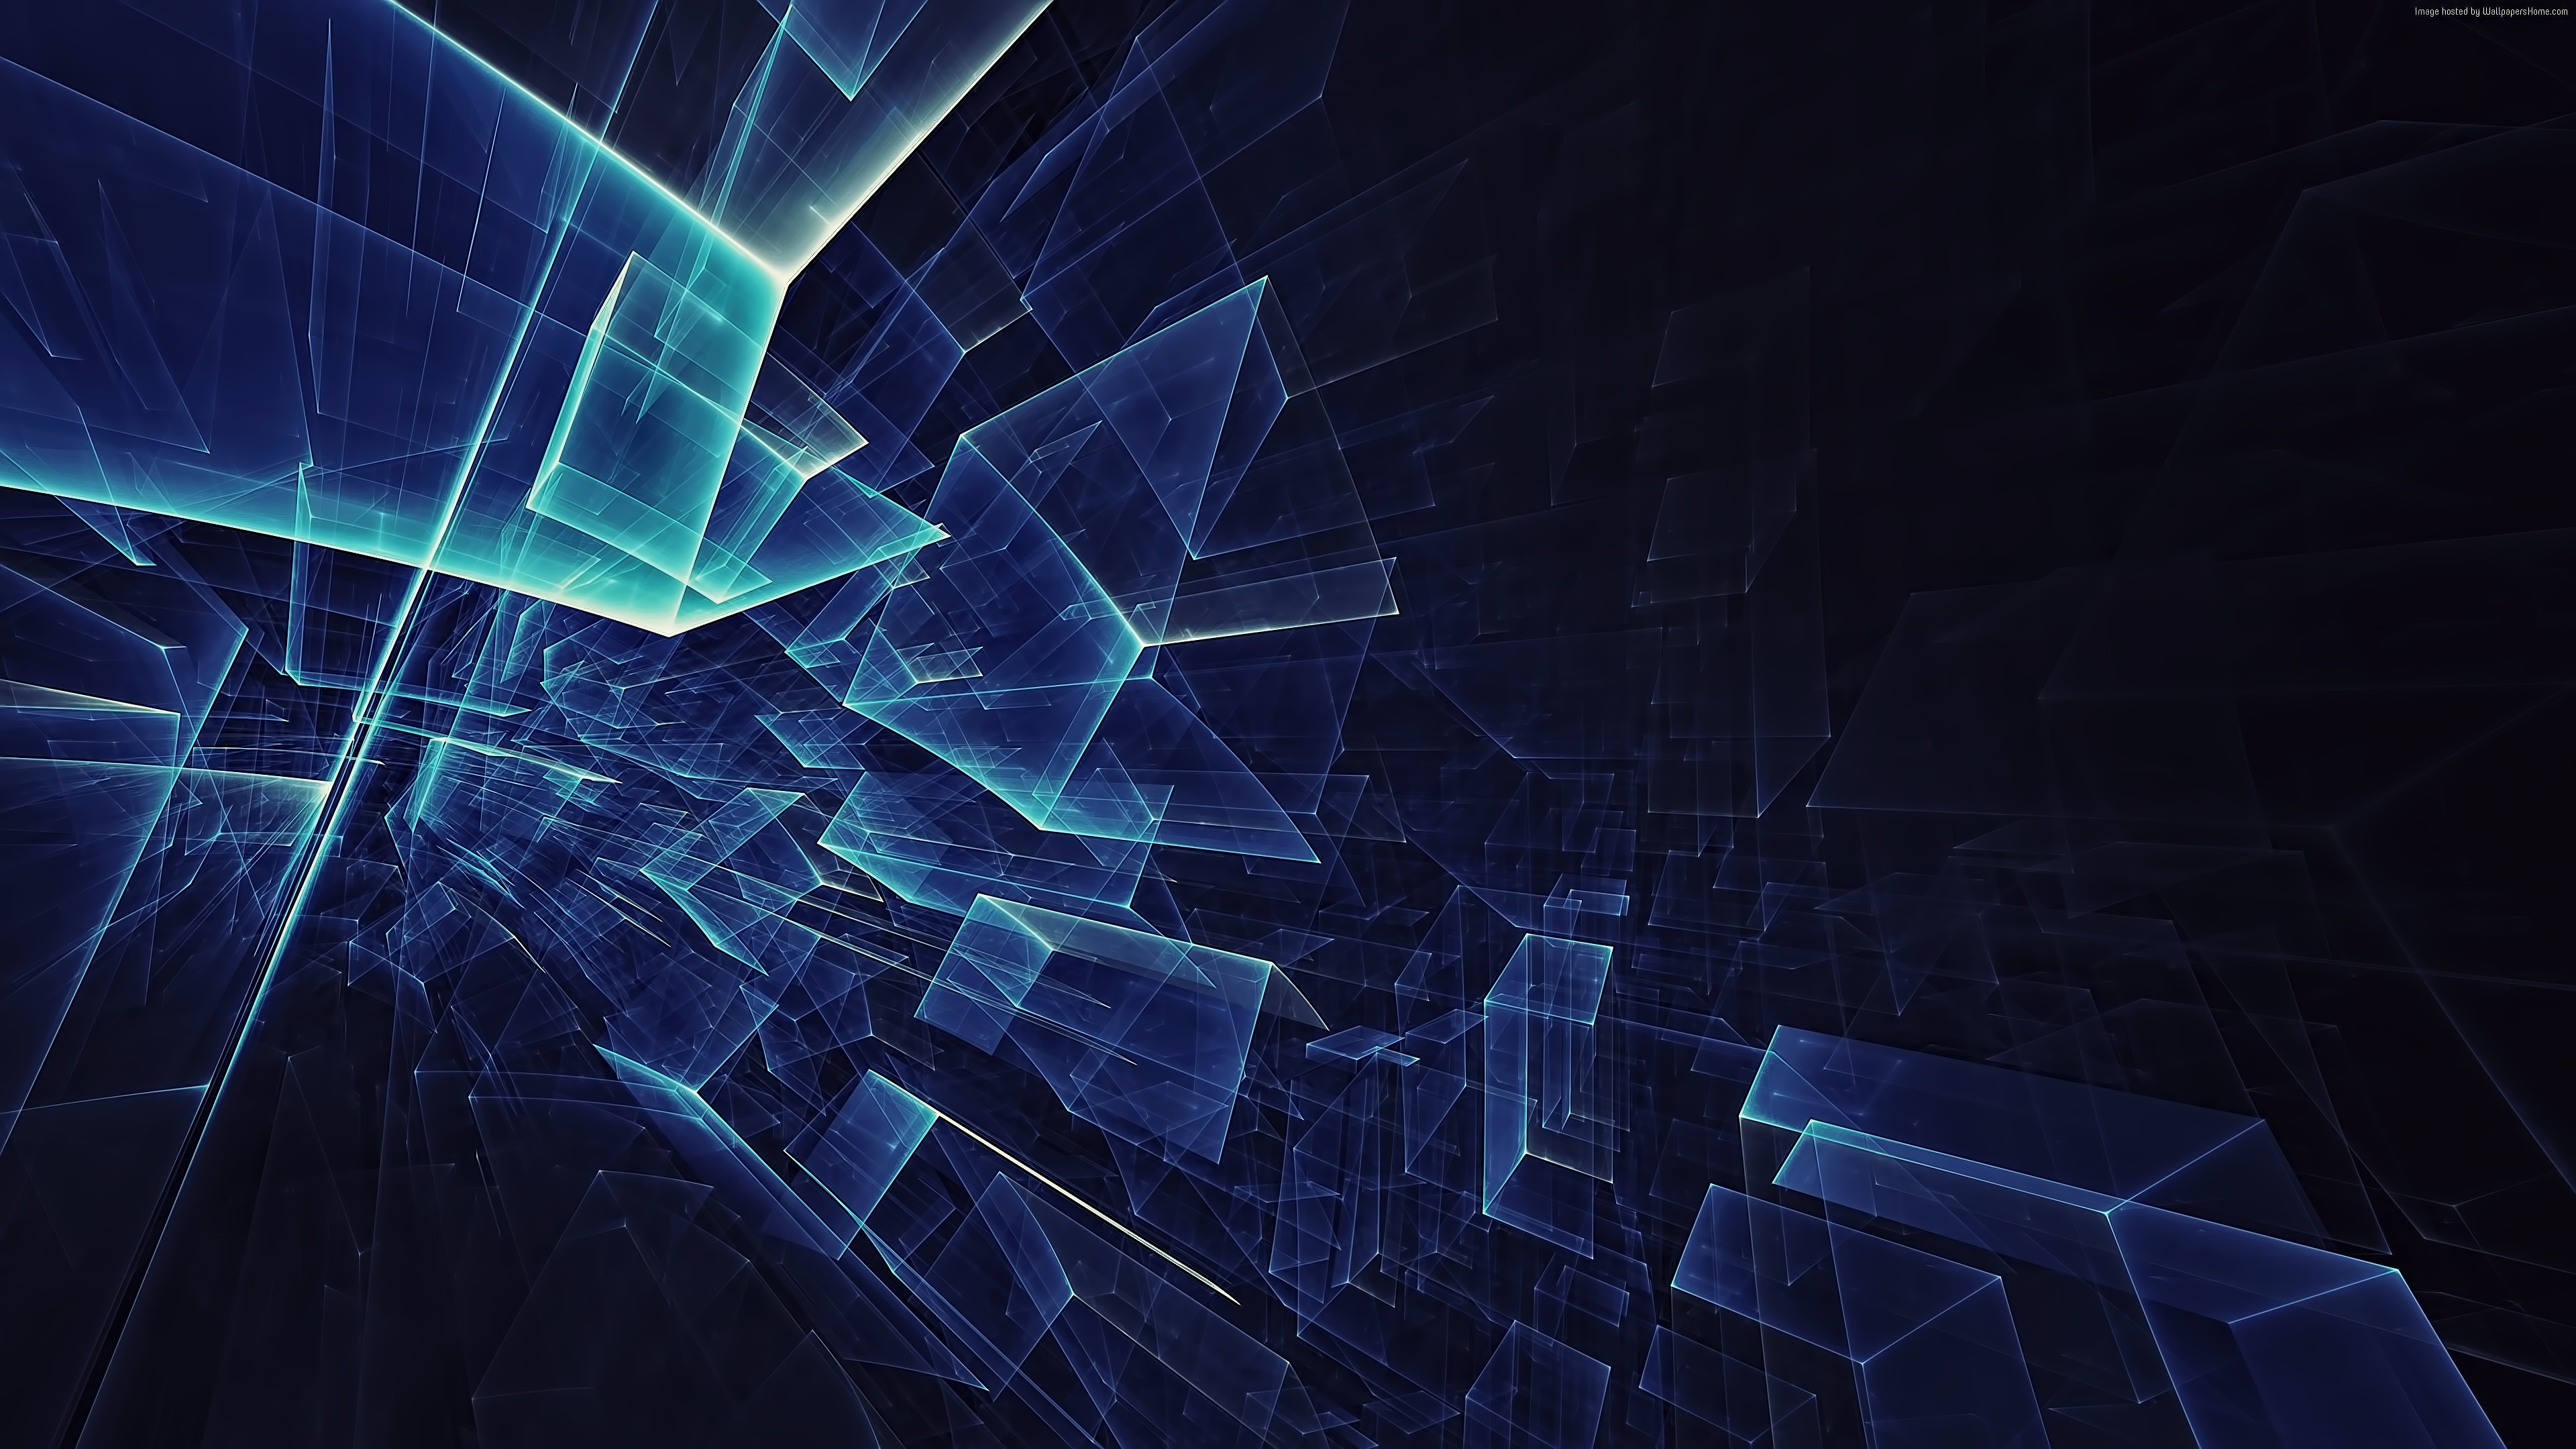 abstract geometry glass 4k hd abstract 4k wallpapers images